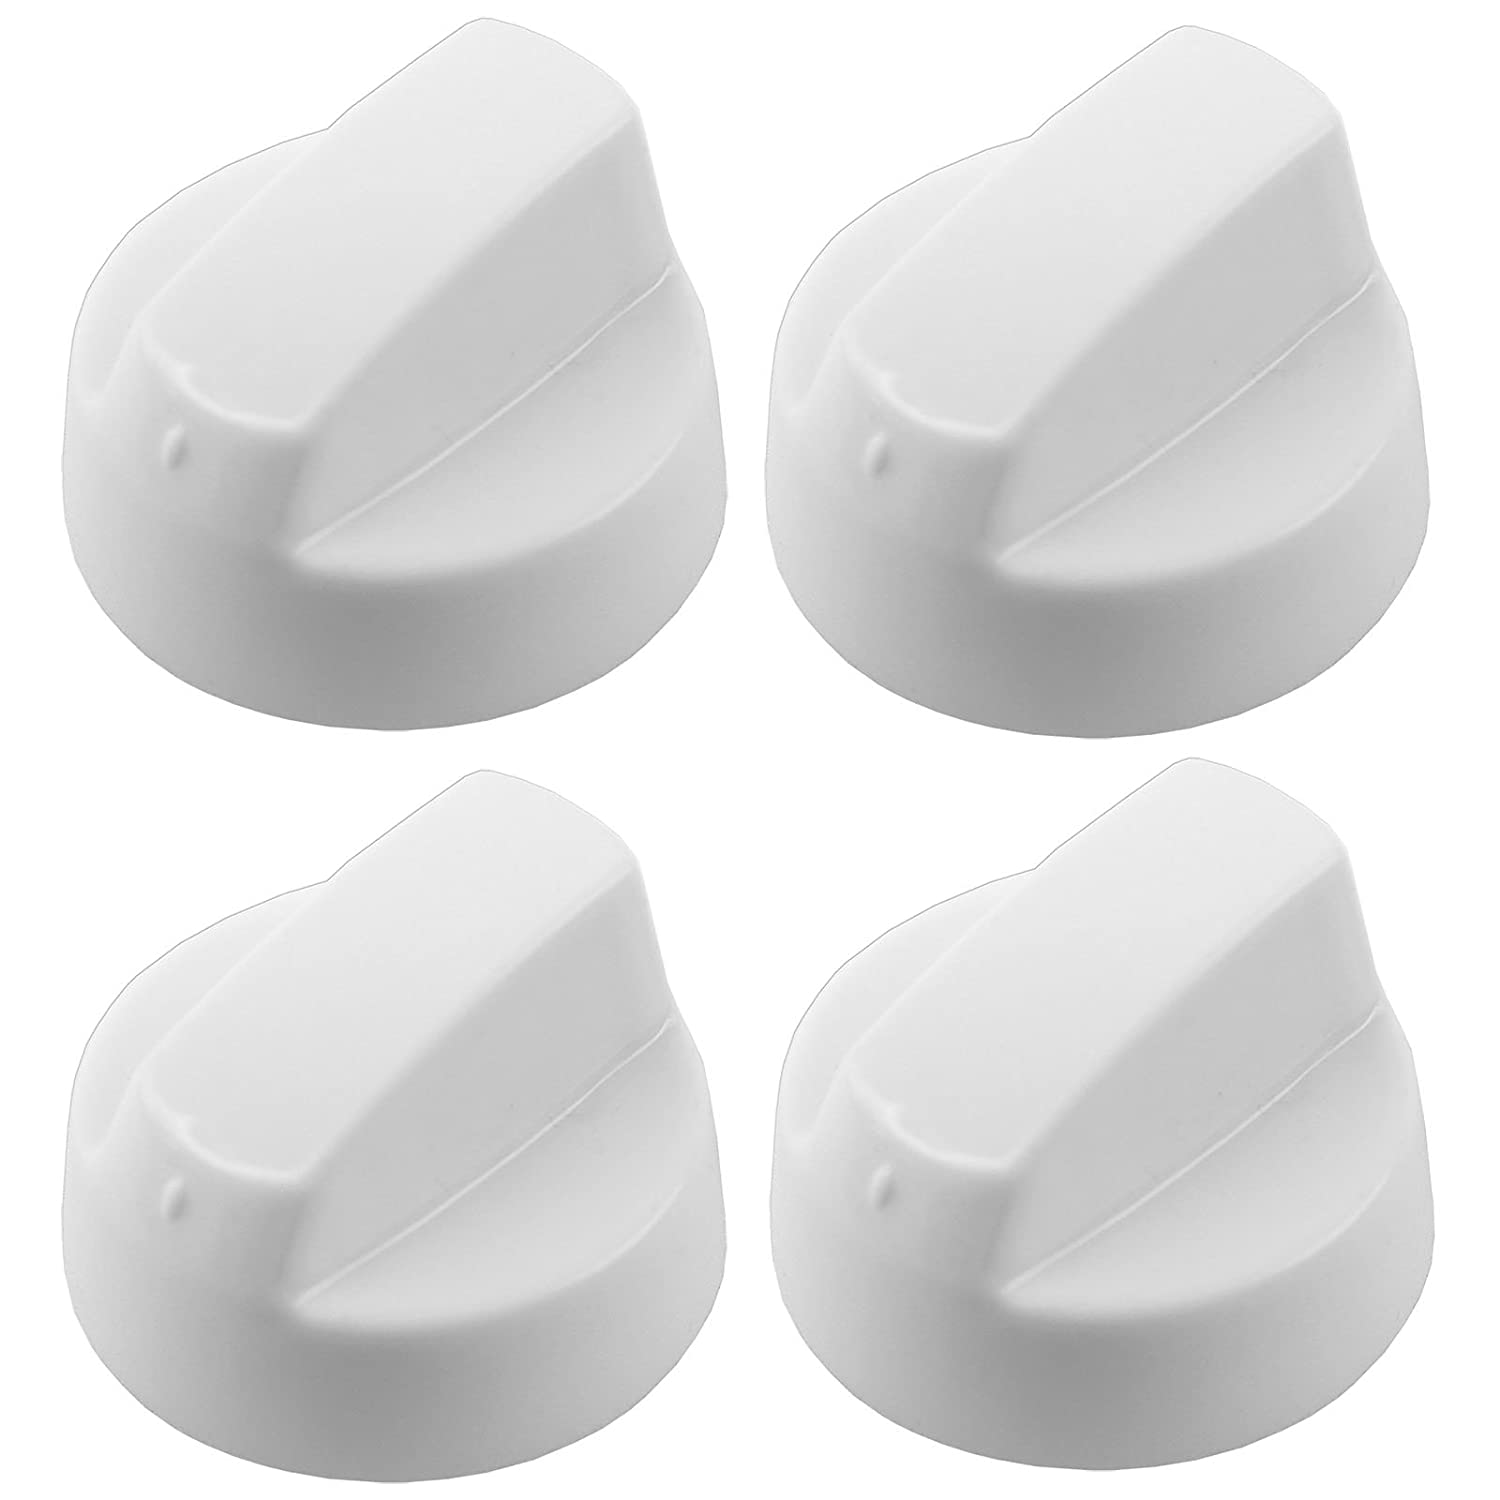 + 4 Adaptors Spares2go Universal White Control Knob for All Makes and Models of Oven Cooker /& Hob